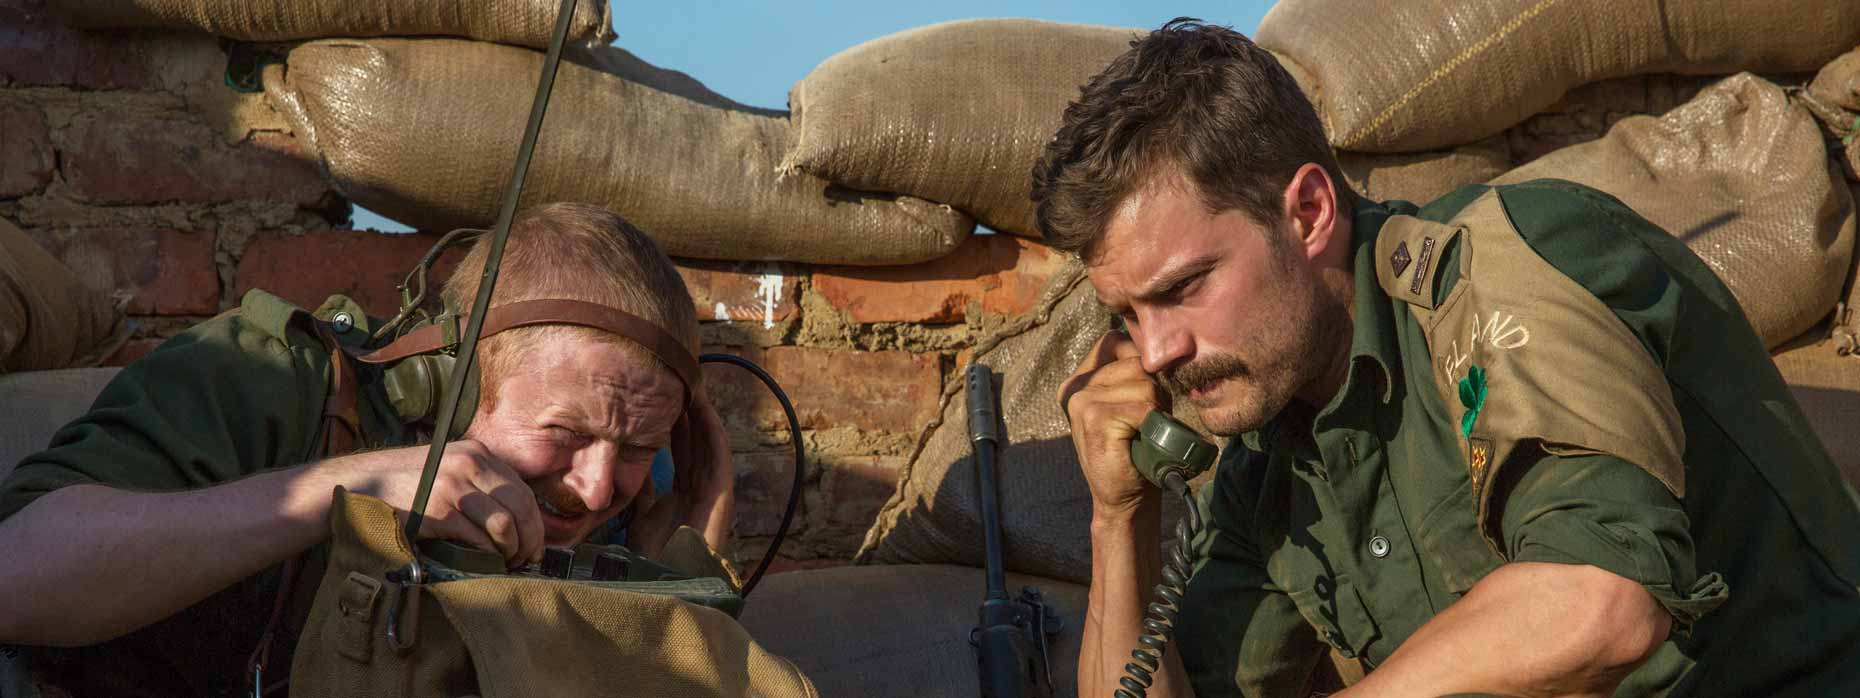 Netflix releases new images for original Jamie Dornan film 'The Siege of Jadotville'